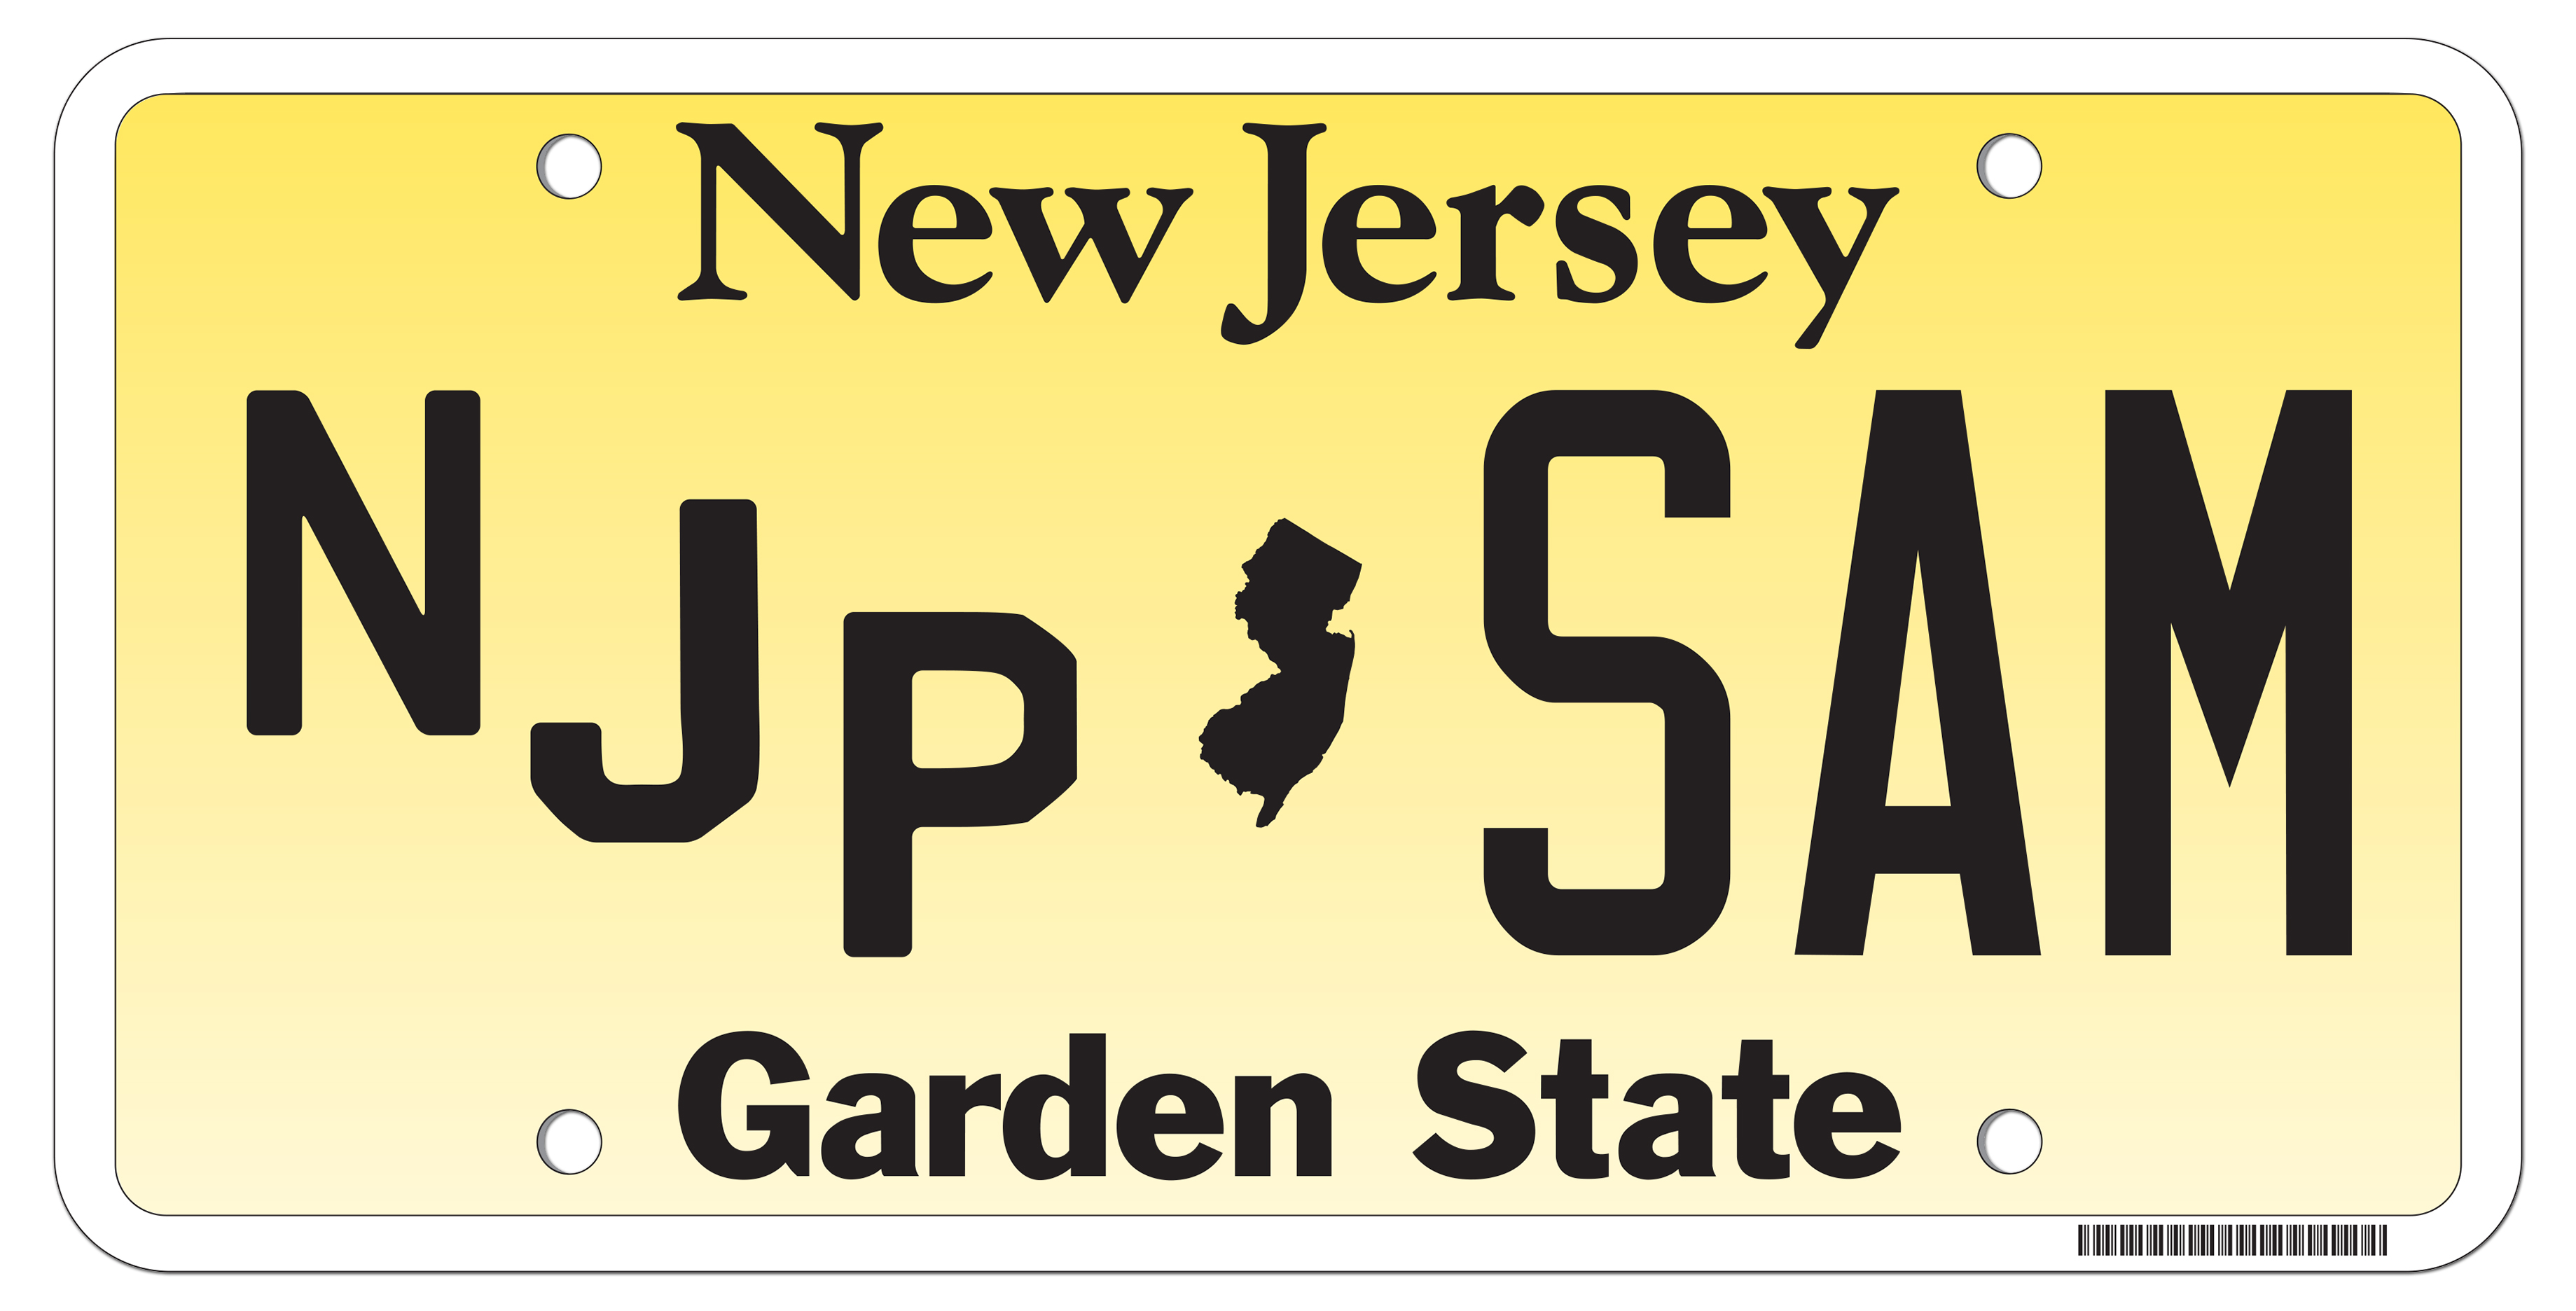 Personalized License Plate Application New Jersey